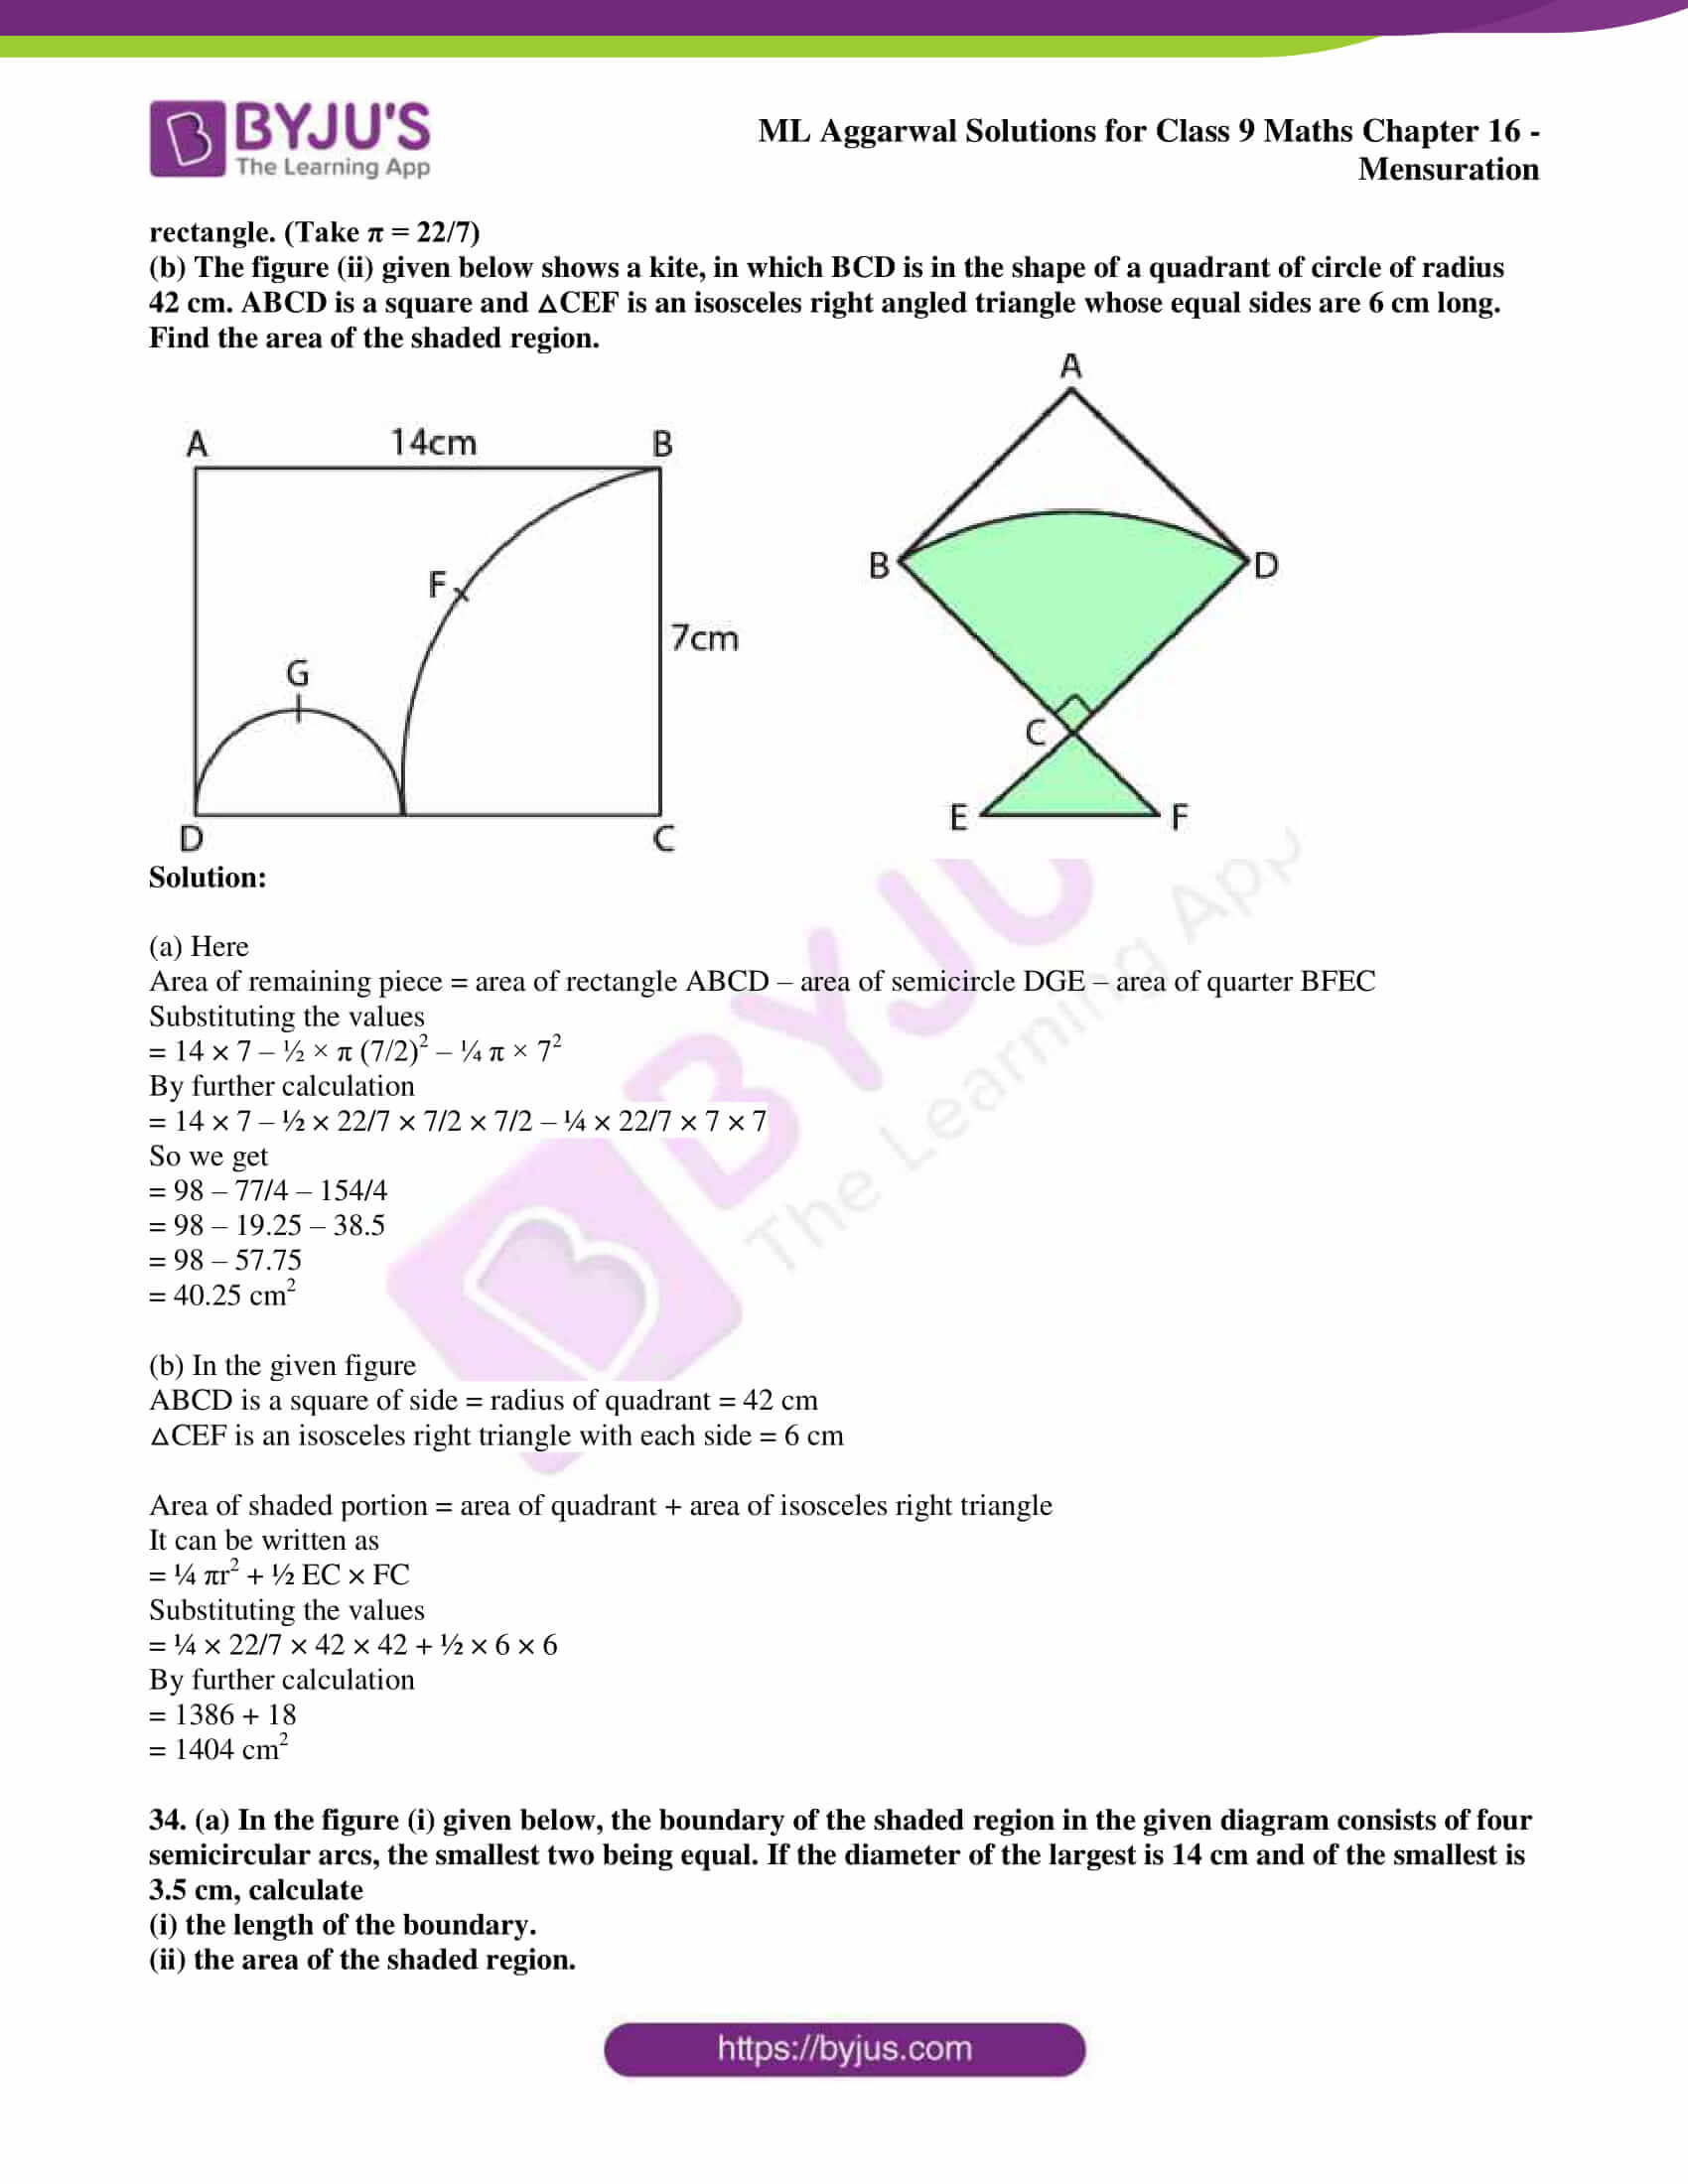 ml aggarwal solutions for class 9 maths chapter 16 107